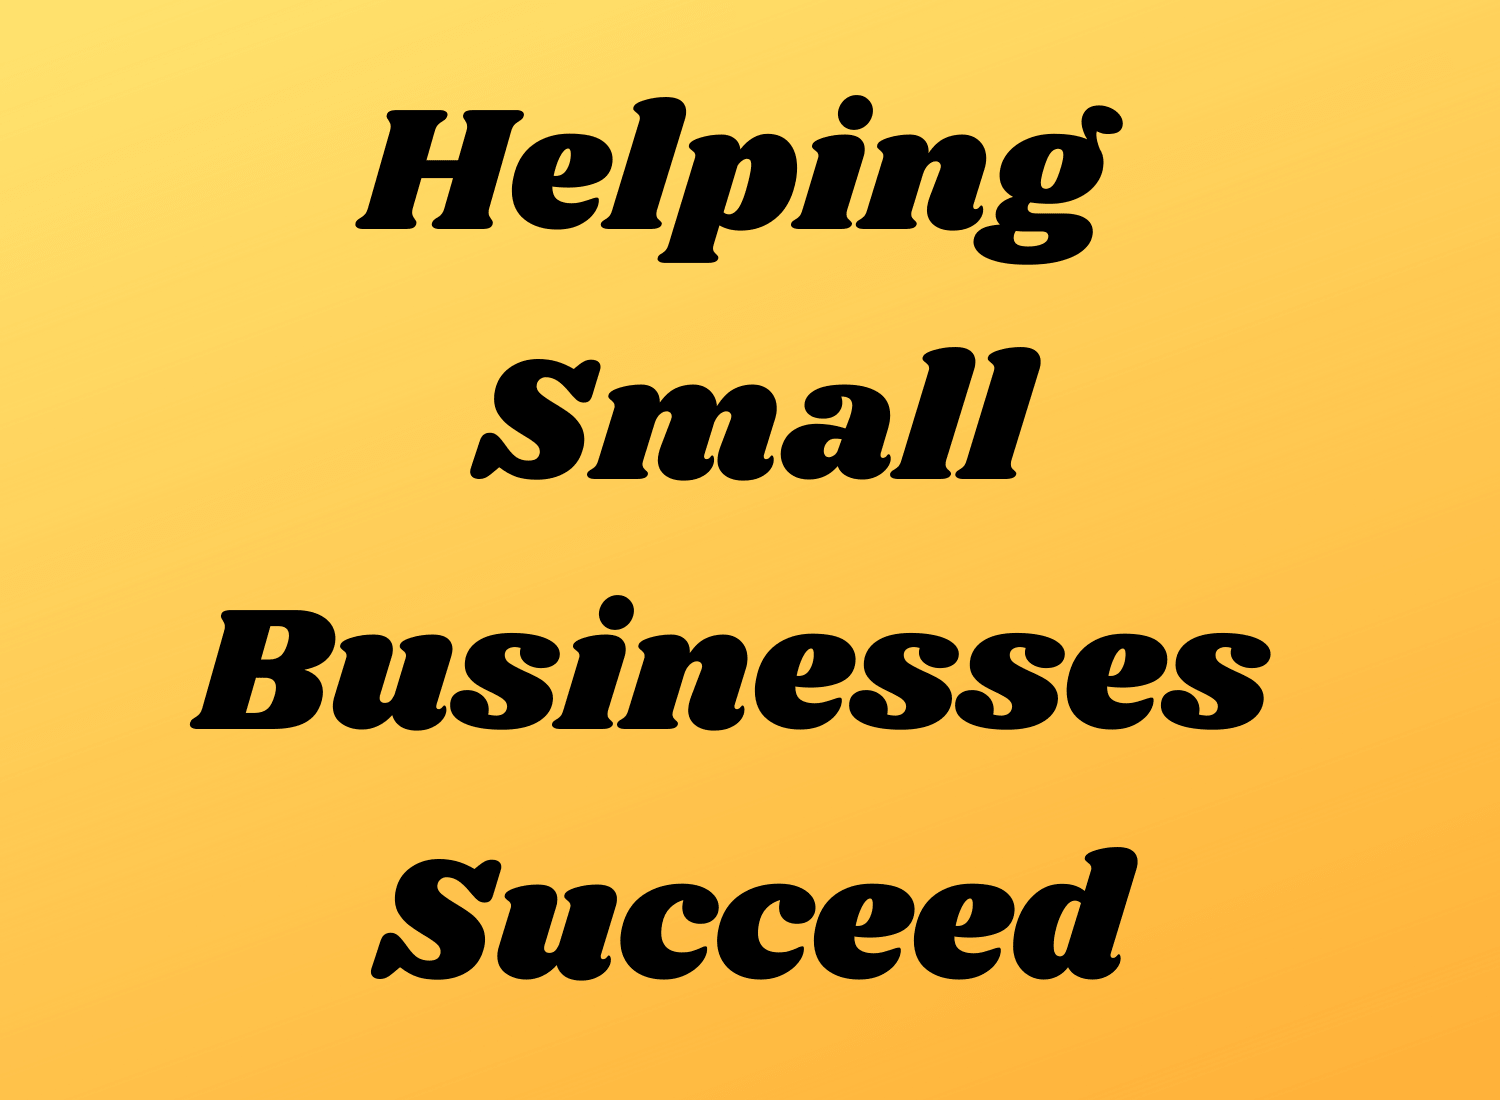 Helping Small Businesses Succeed